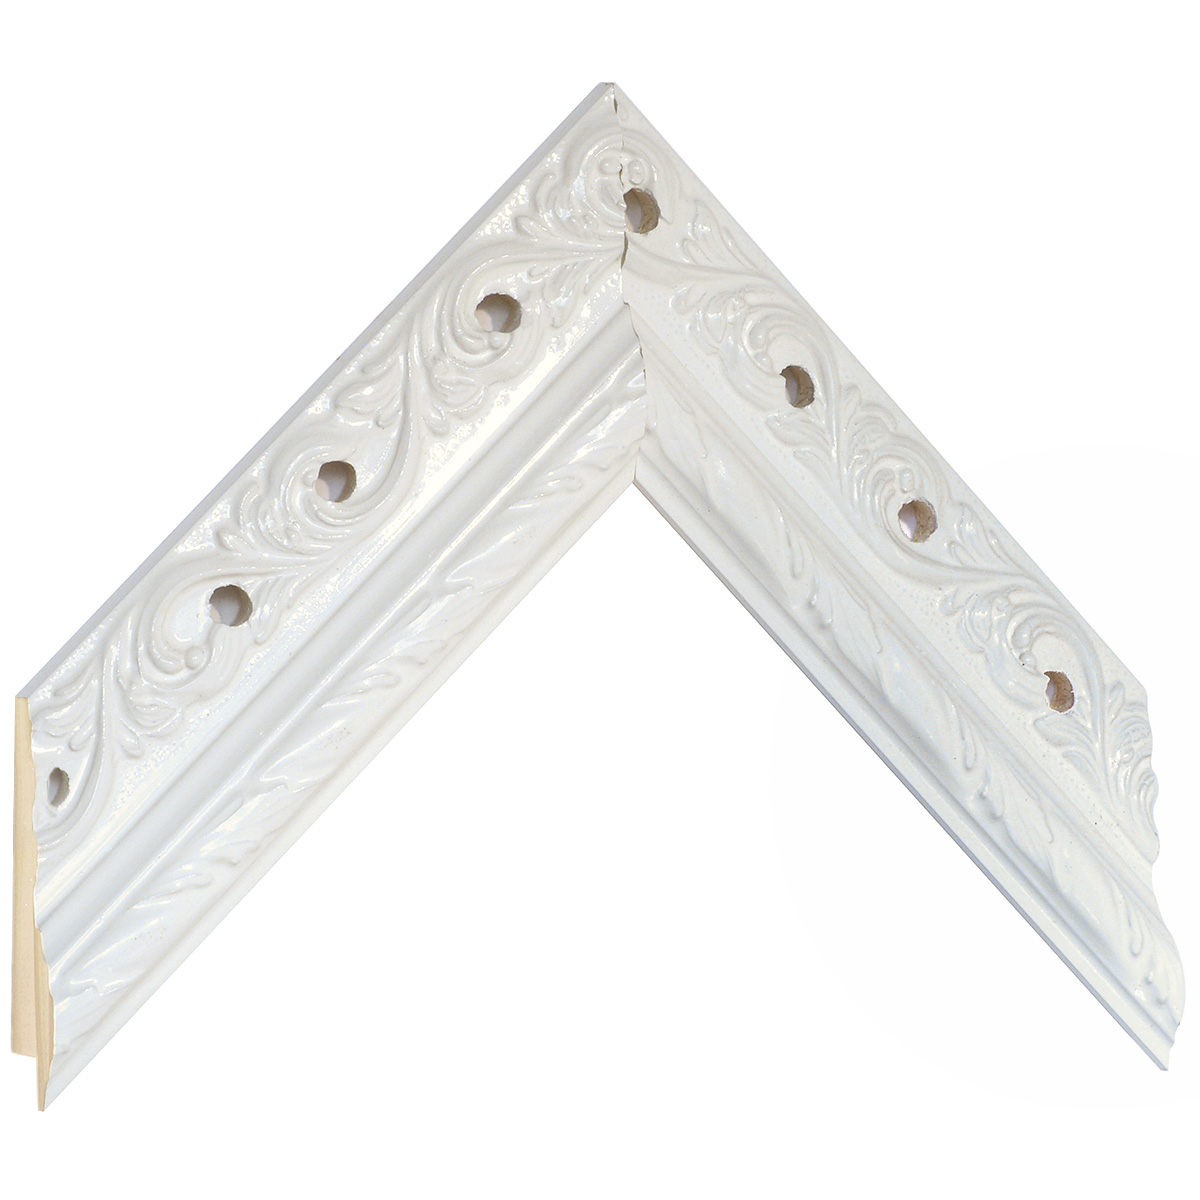 Moulding pine 48mm wide, white with holes and decorations